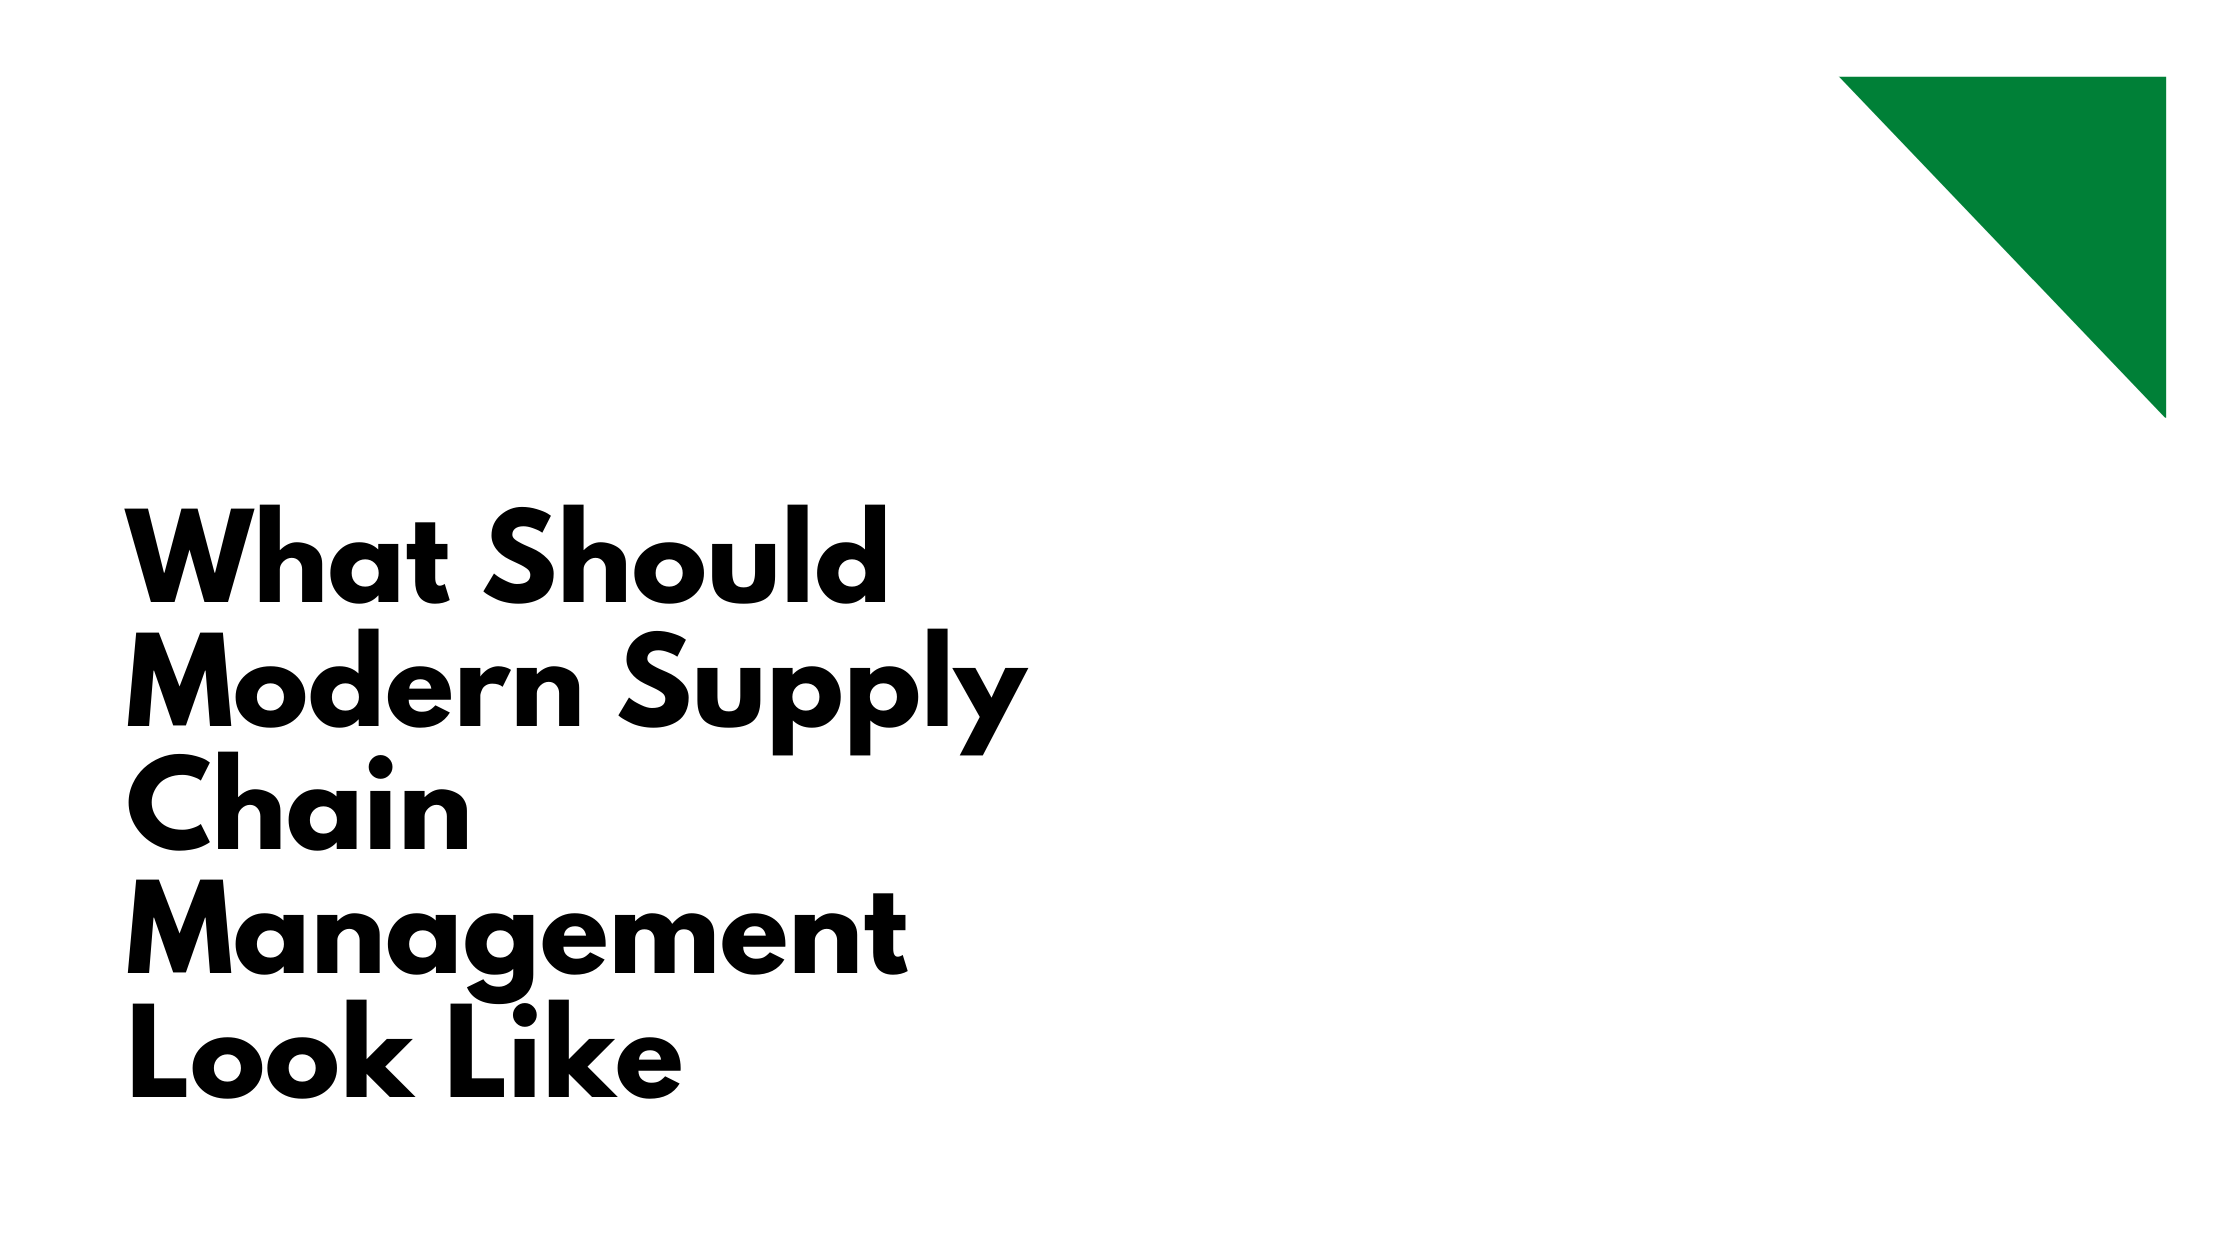 What Should Modern Supply Chain Management Look Like